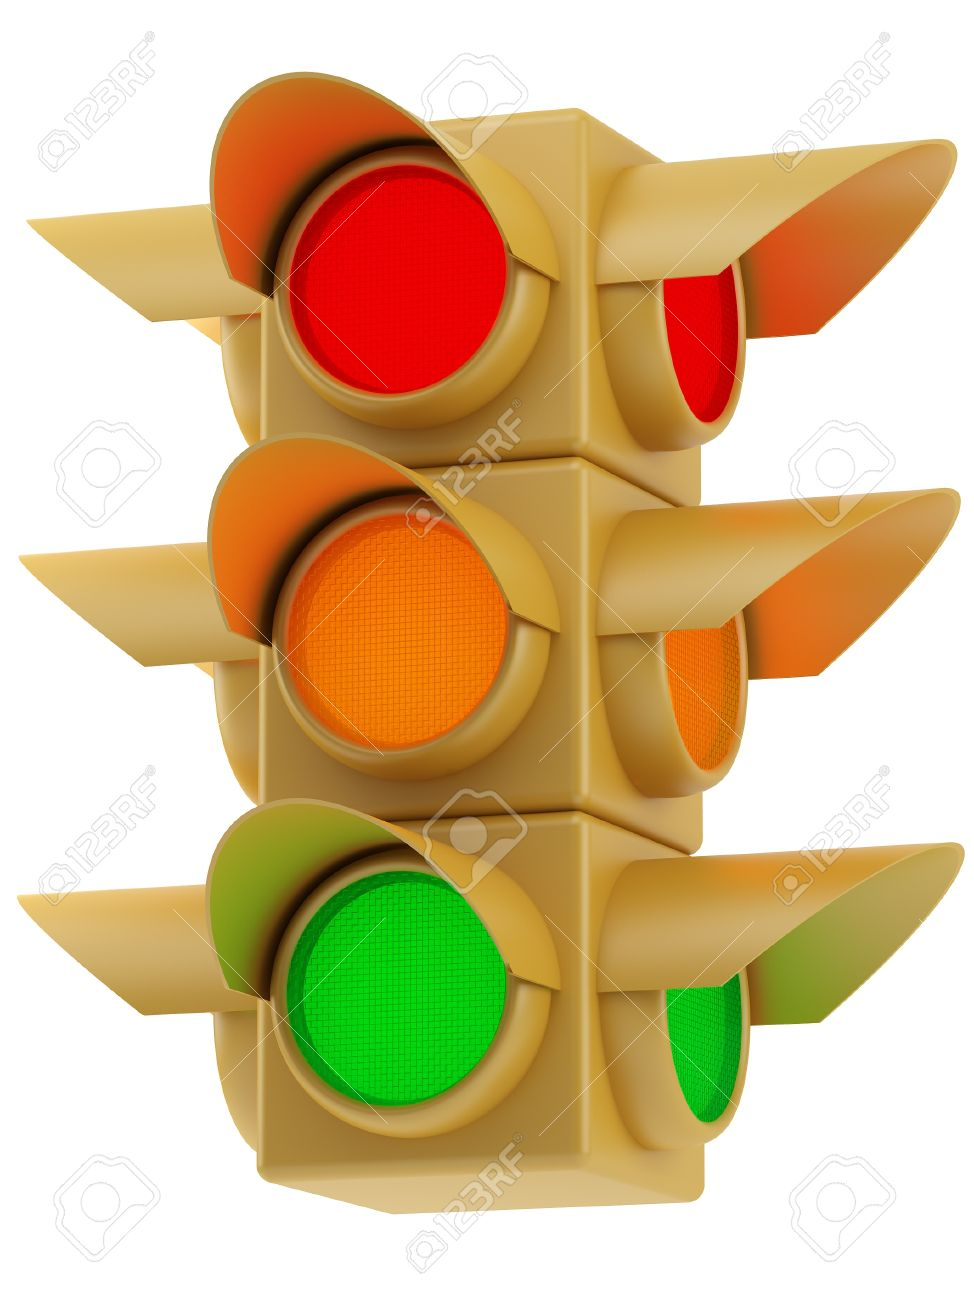 Stock Photo   Yellow Traffic Lights With Red, Yellow And Green Light Amazing Ideas